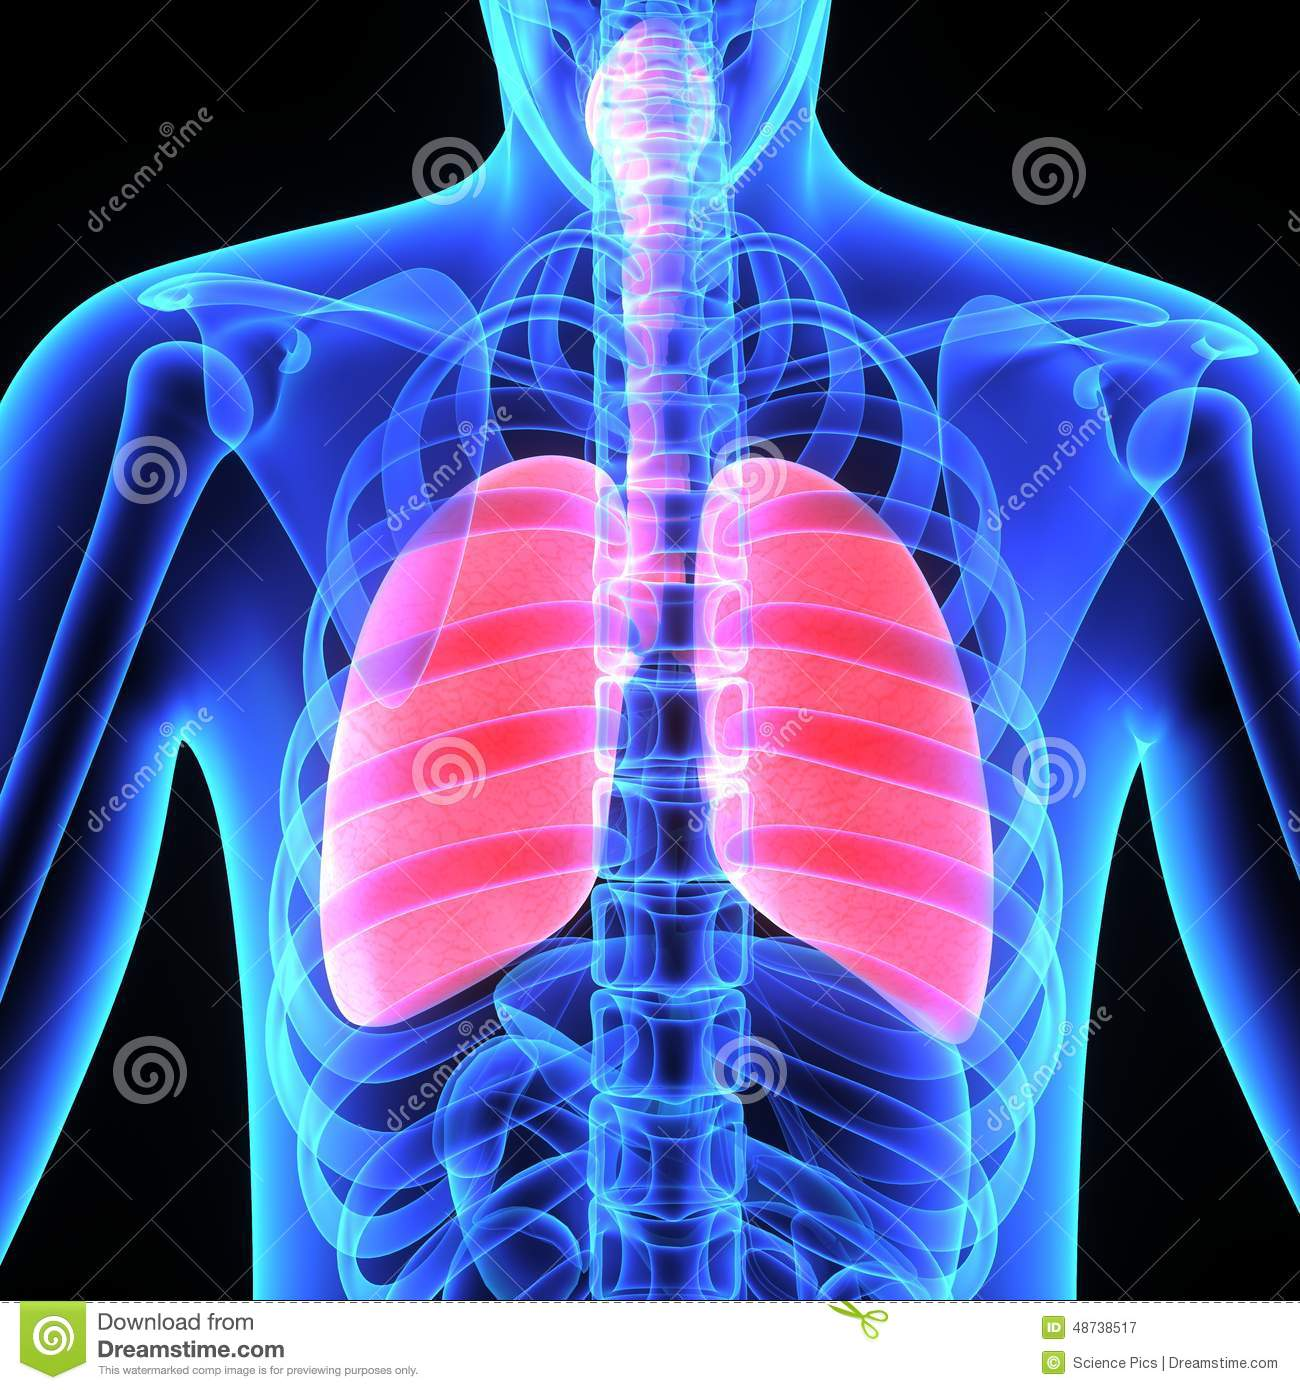 Where Are The Lungs Located Topsimages